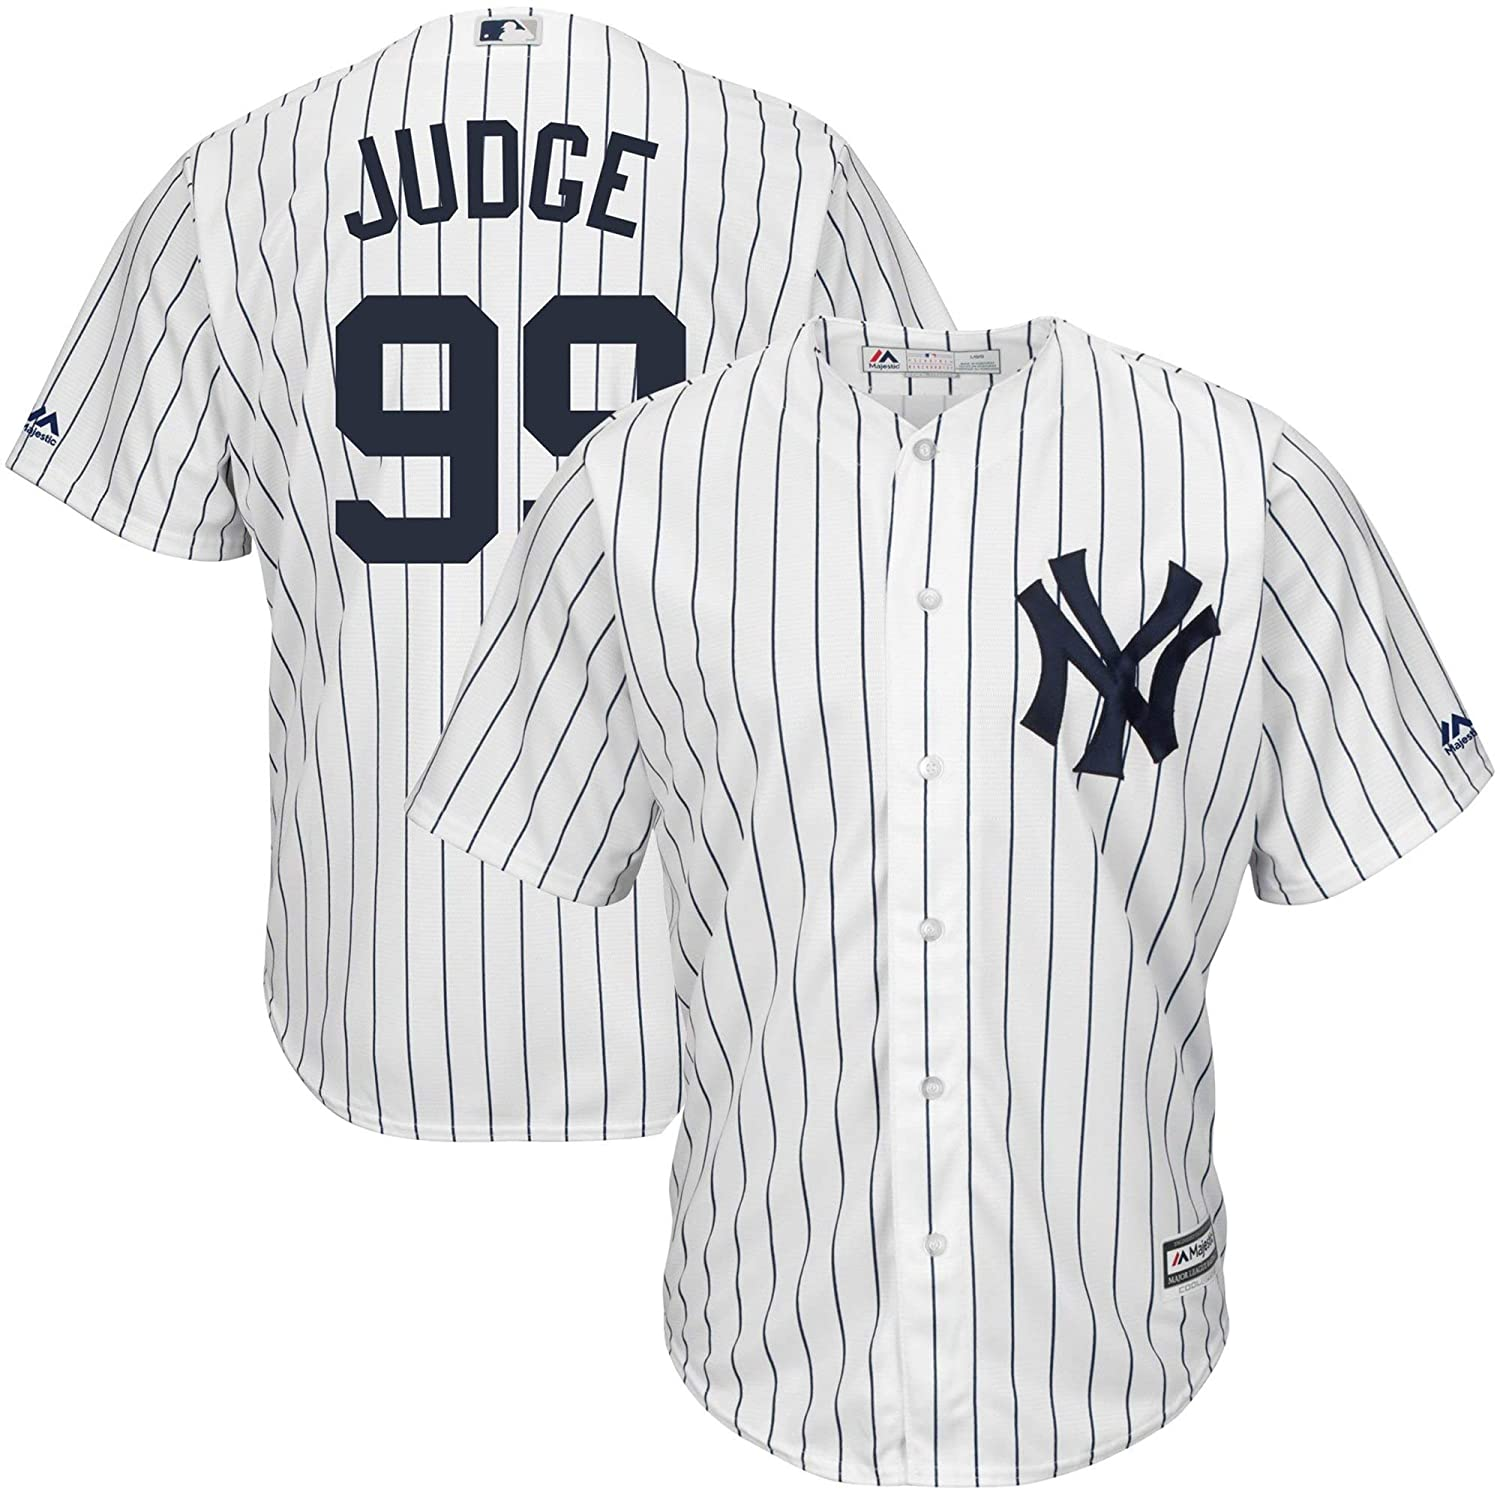 info for c4a80 5450f Outerstuff Aaron Judge New York Yankees MLB Majestic Toddler White Home  Cool Base Player Jersey